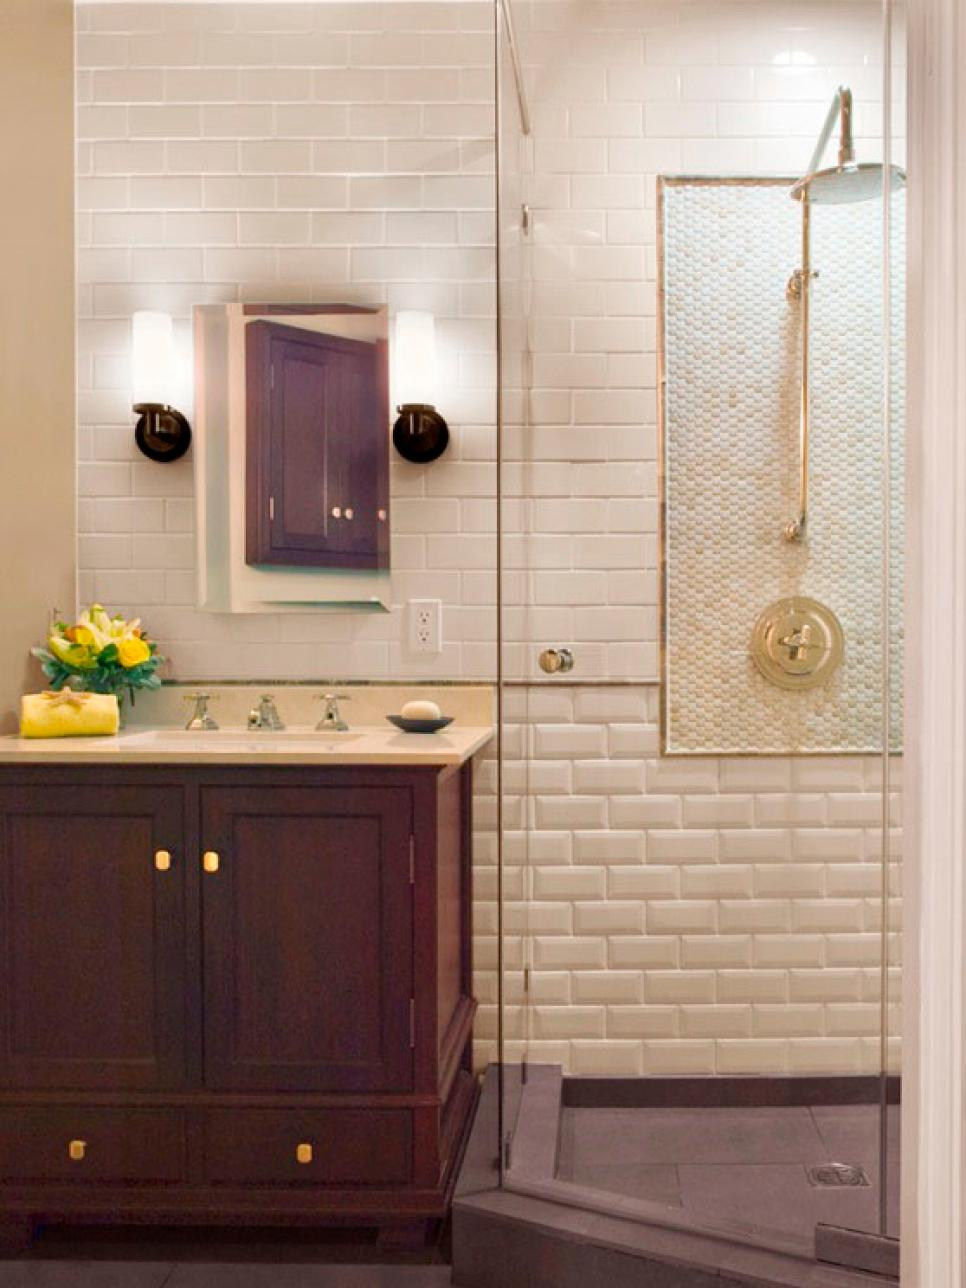 Bathroom Design Ideas Tile bathroom shower designs | hgtv